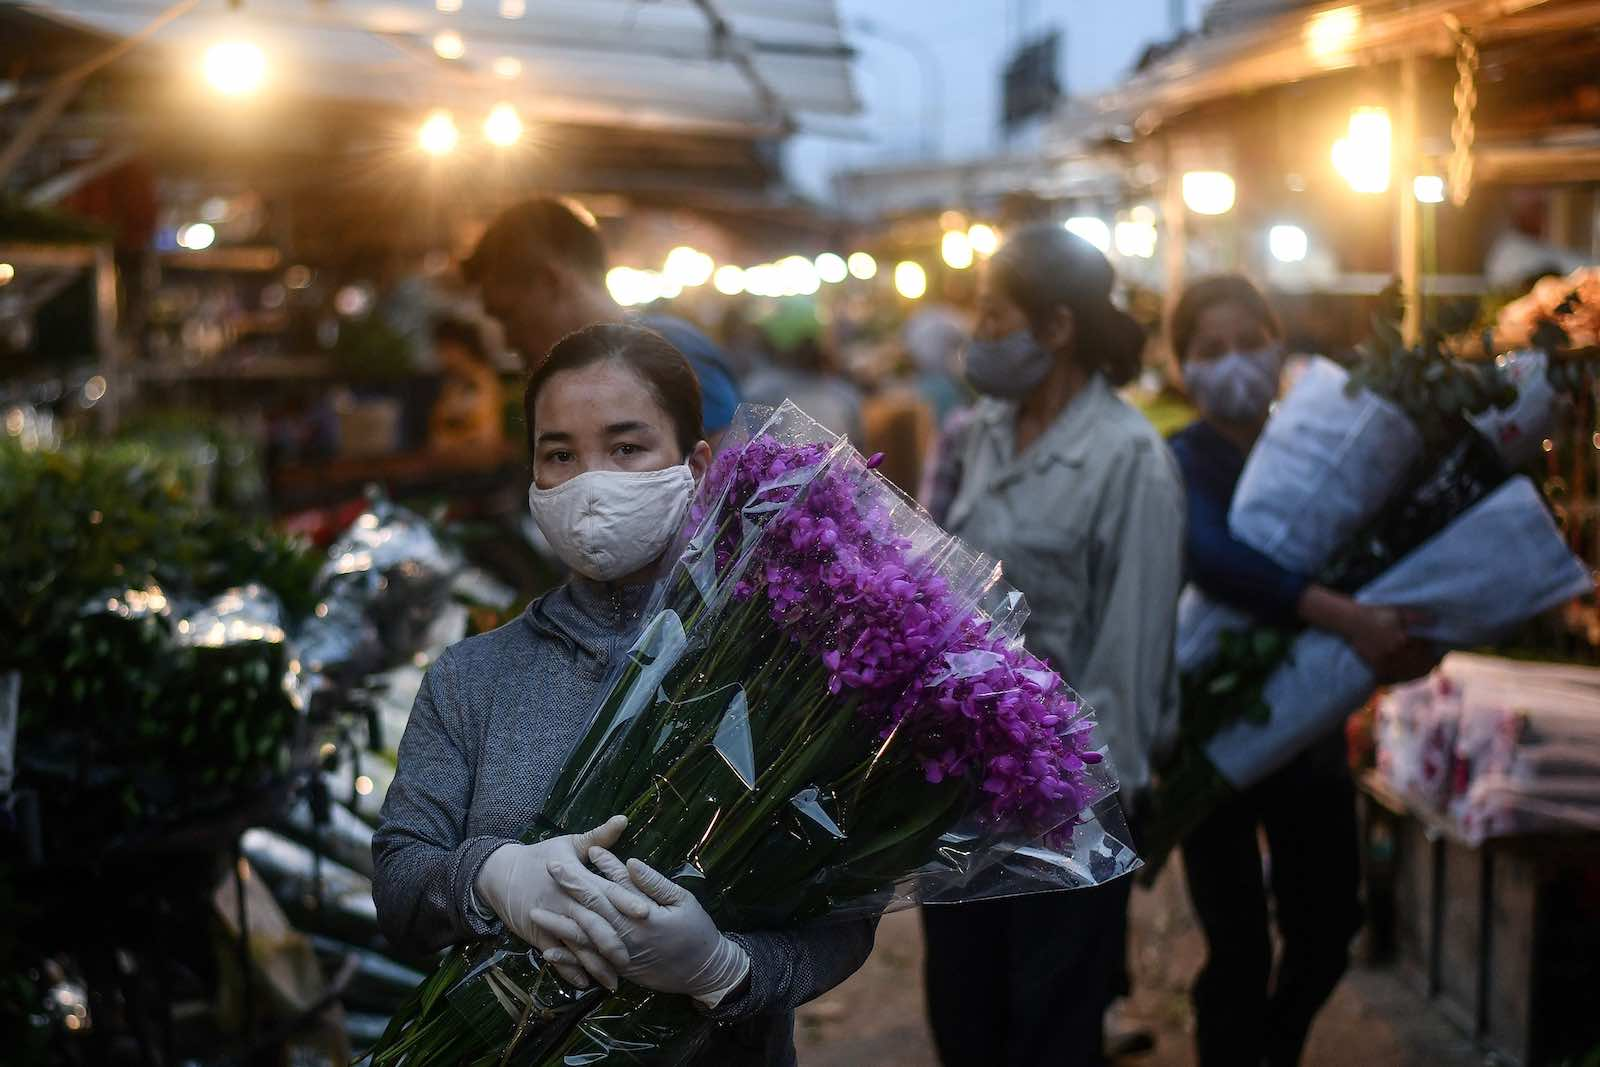 A woman carries flowers at the Quang Ba flower market in Hanoi, 11 May (Manan Vatsyayana/AFP via Getty Images)